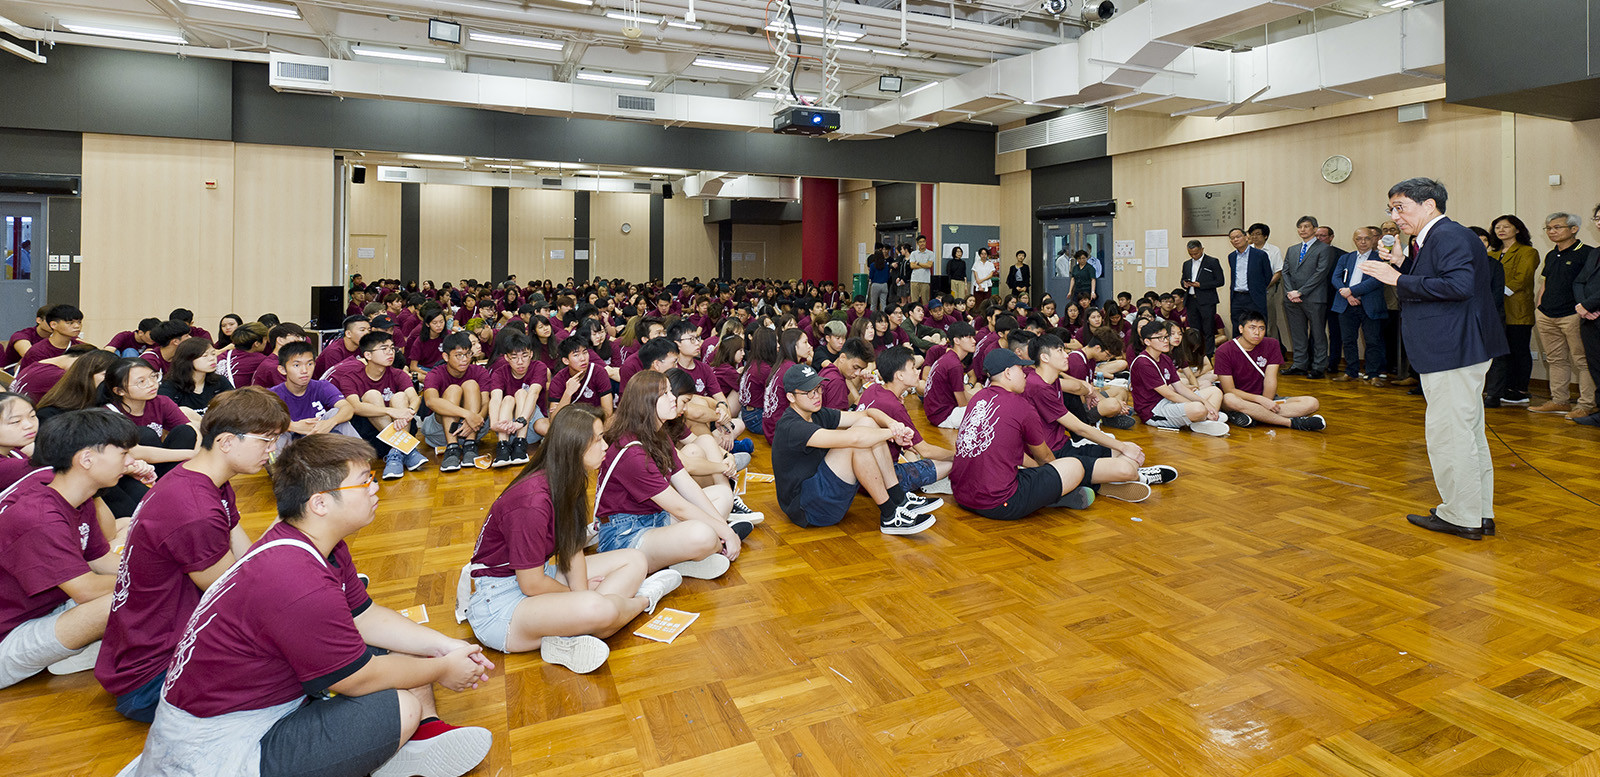 President Kuo met and greeted around 200 new students at the annual O'Camp.